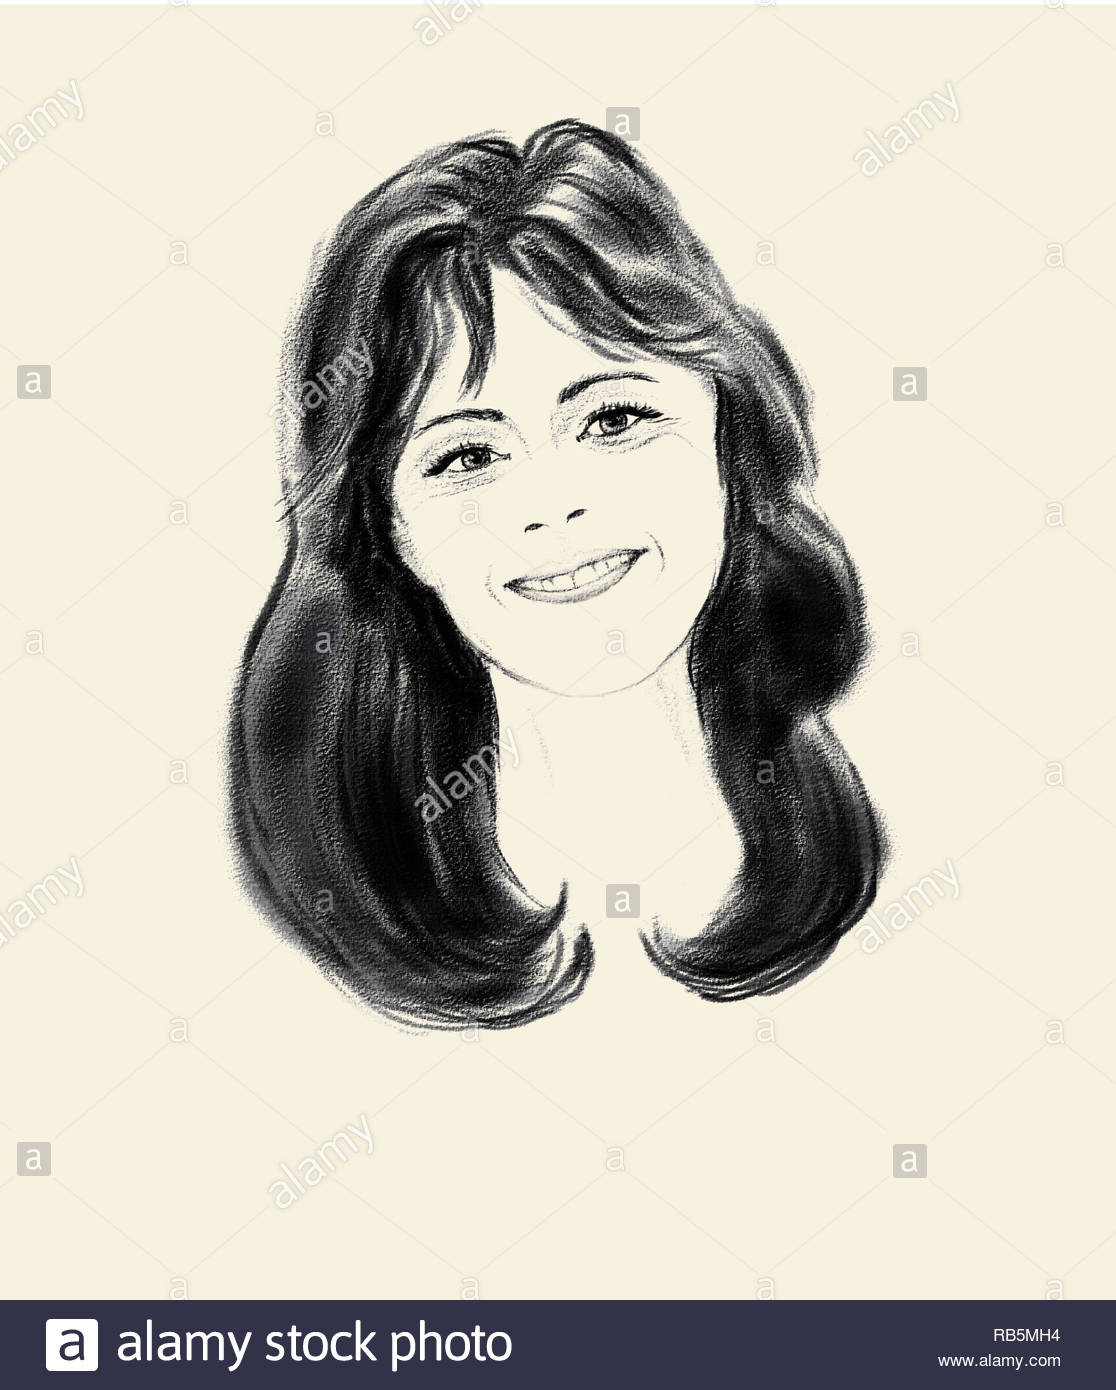 Pencil sketch of a smiling young girl with long dark hair on yellow paper